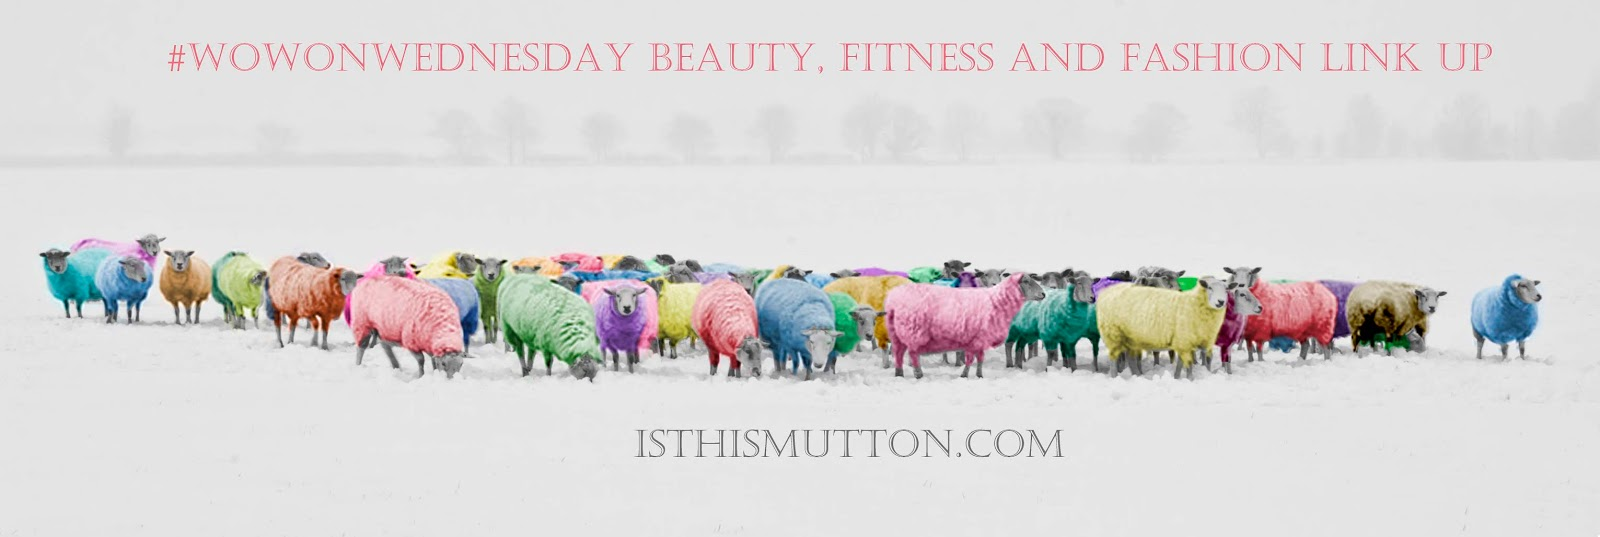 Colourful sheep, the masthead for over 50s style blog Is This Mutton, promoting the weekly #WowOnWednesday link up